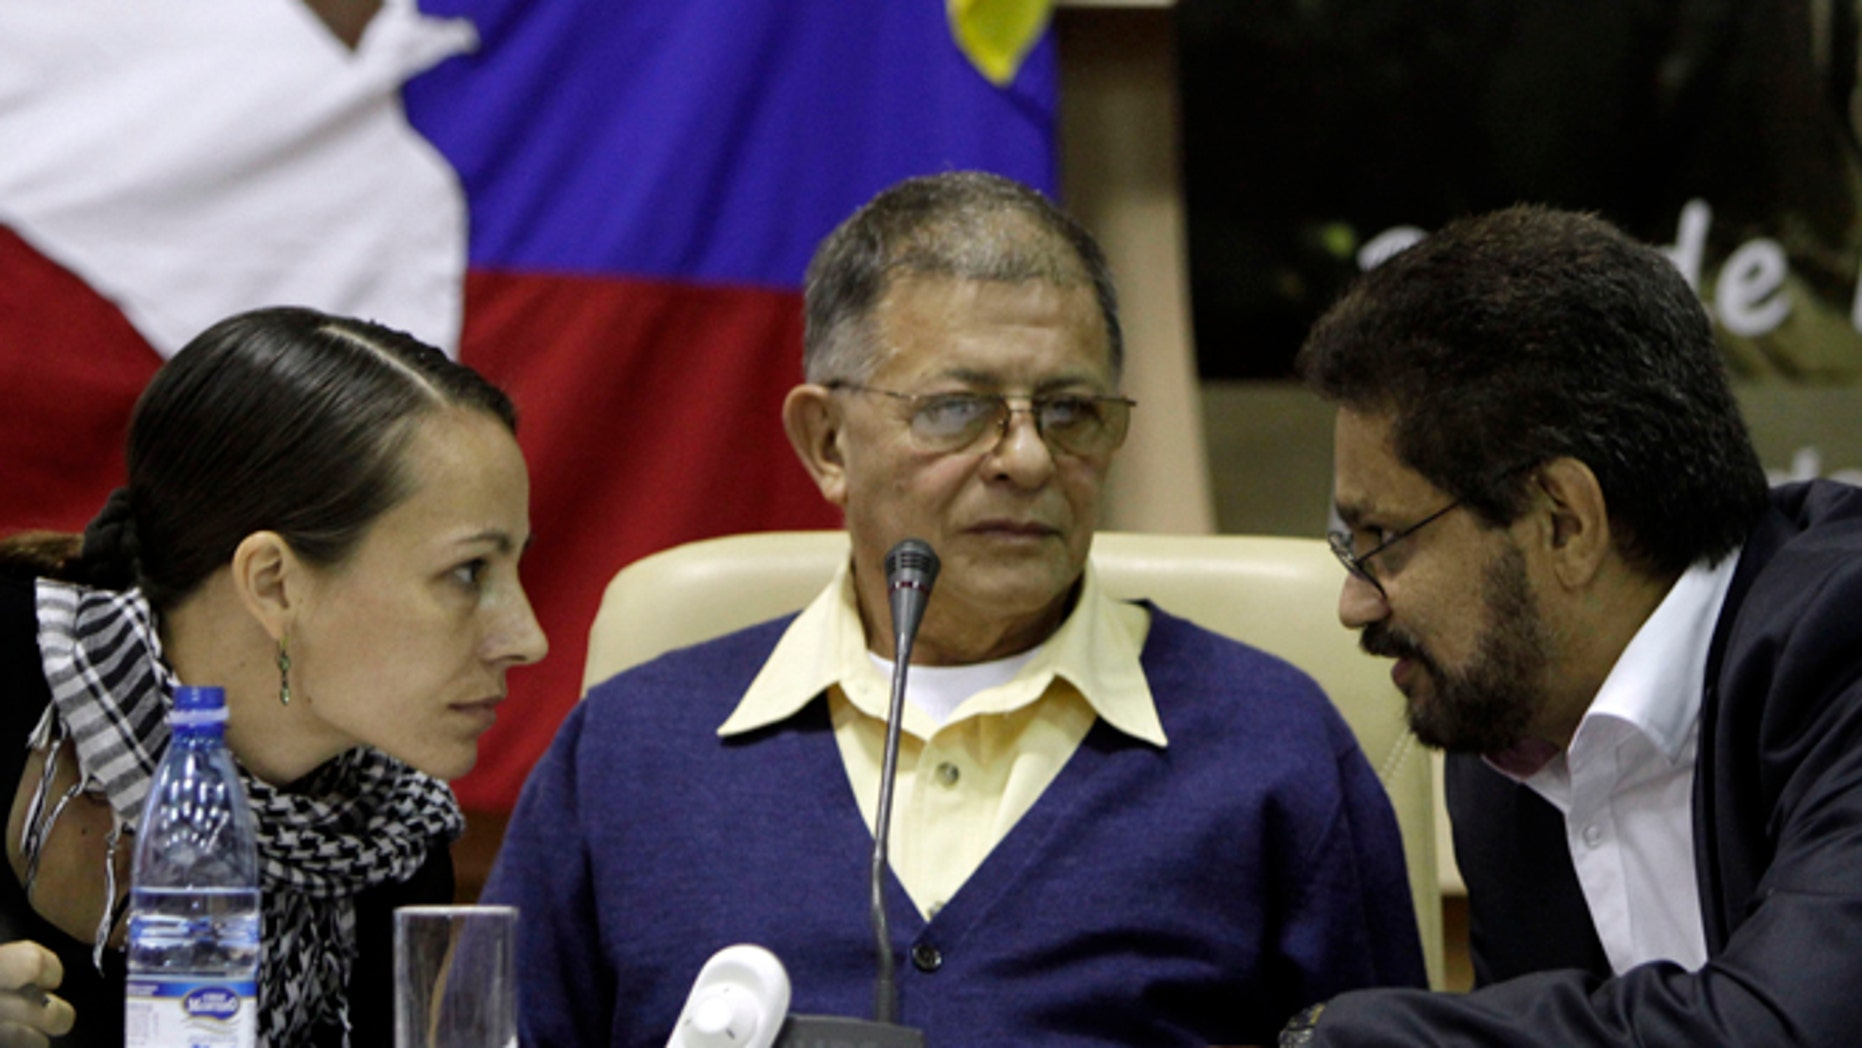 Ivan Marquez, right, chief negotiator for Colombia's Revolutionary Armed Forces of Colombia, or FARC, speaks with Dutch rebel Tanja Nijmeijer as Ricardo Tellez looks on during a press conference in Havana, Cuba, Thursday, Nov. 29, 2012.  After days of intensive peace talks between the FARC and the Colombian government, negotiators will recess and resume talks on Dec. 5. (AP Photo/Franklin Reyes)